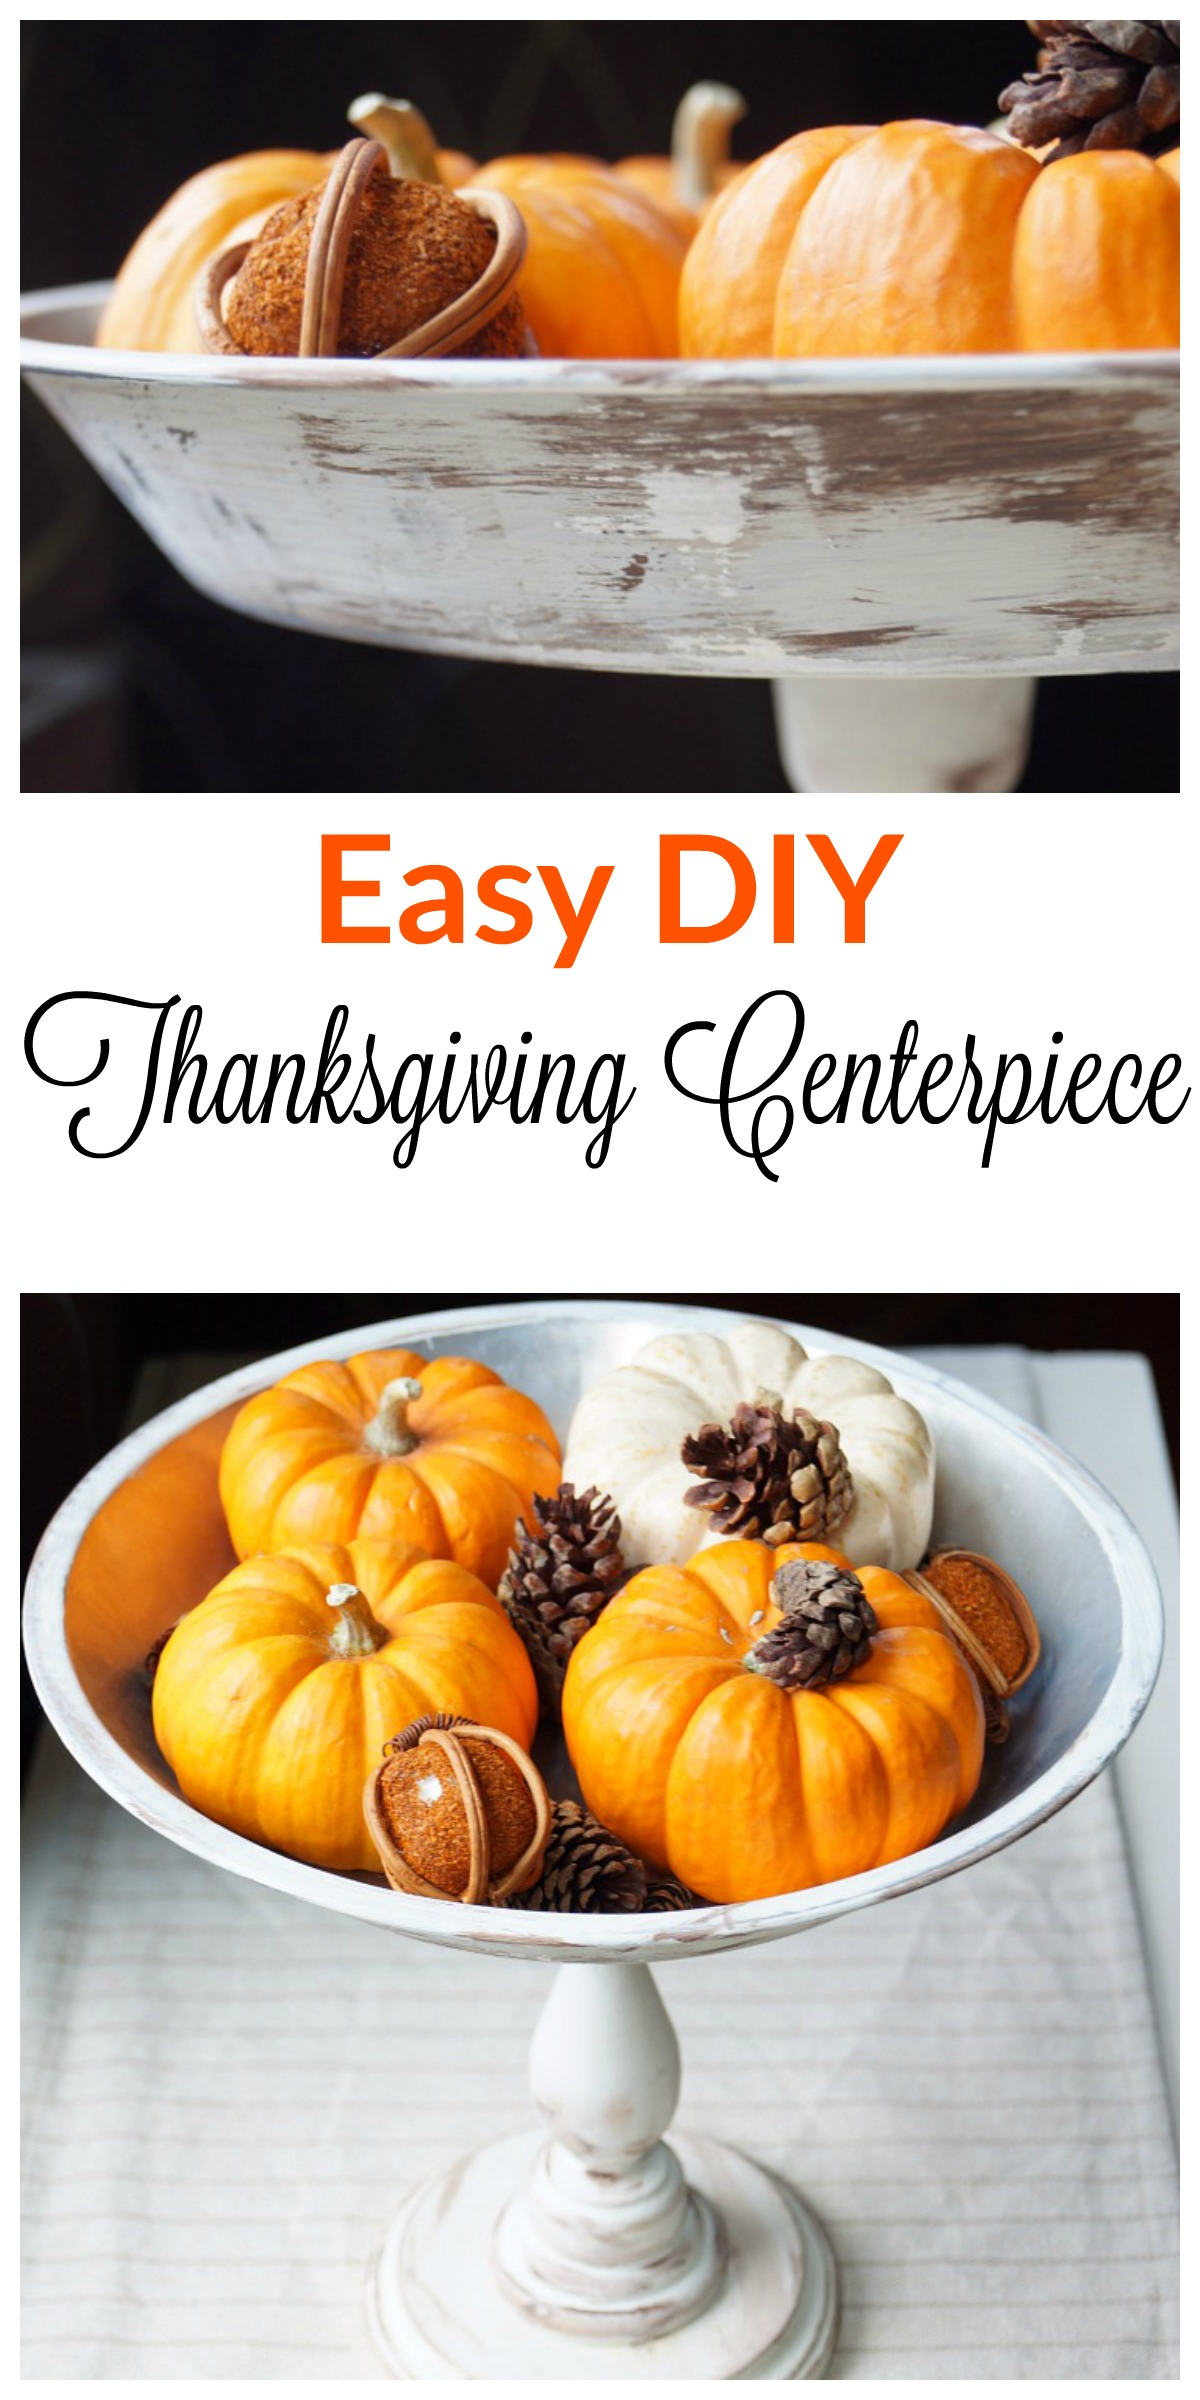 Easy DIY Thanksgiving Centerpiece made from an old pie pan and a candle stick!